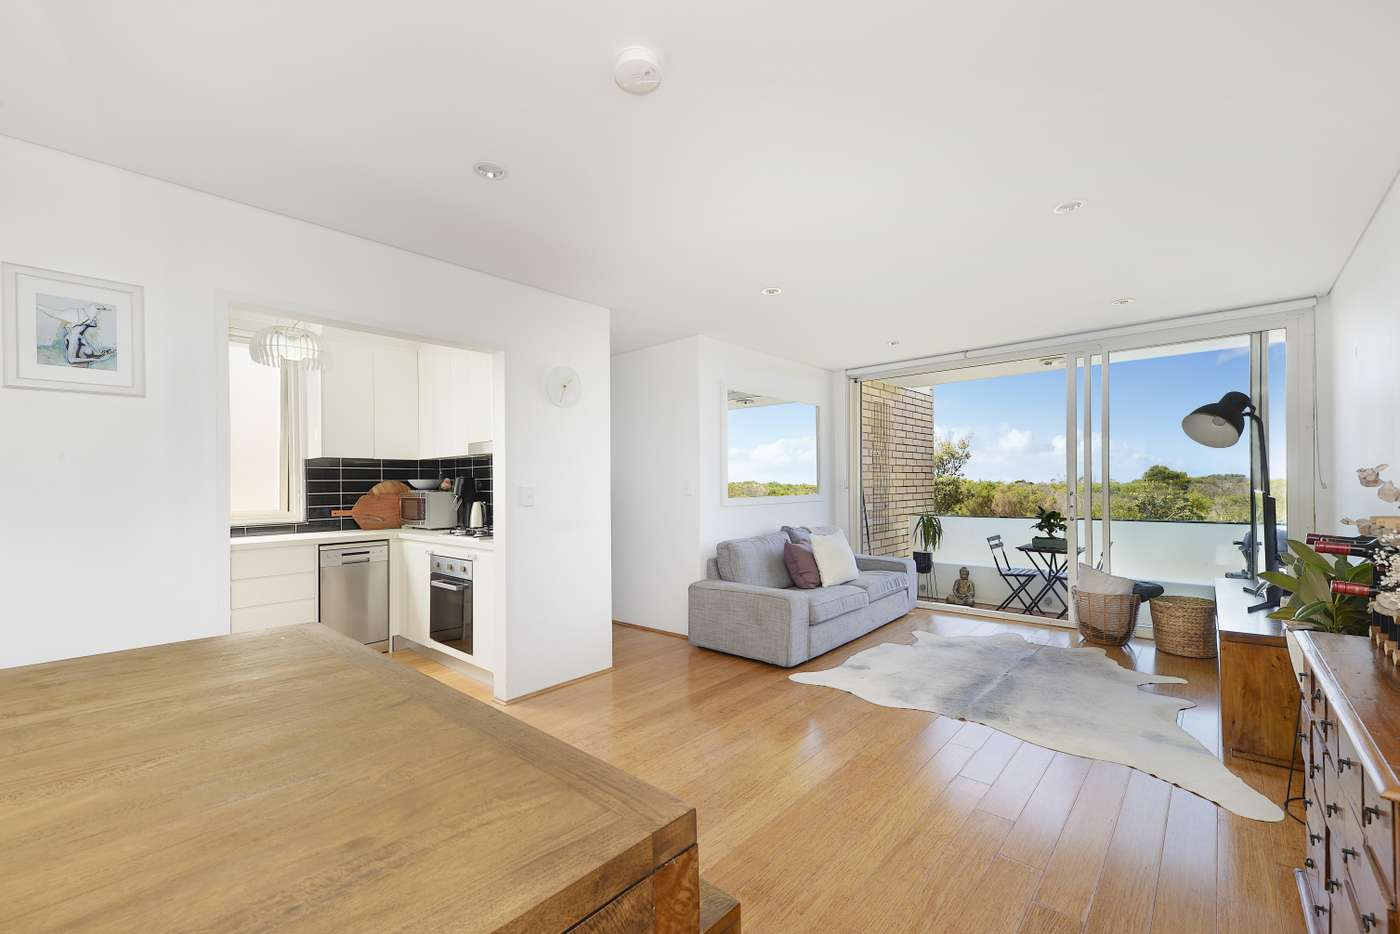 Fifth view of Homely unit listing, 11/83 Broome Street, Maroubra NSW 2035